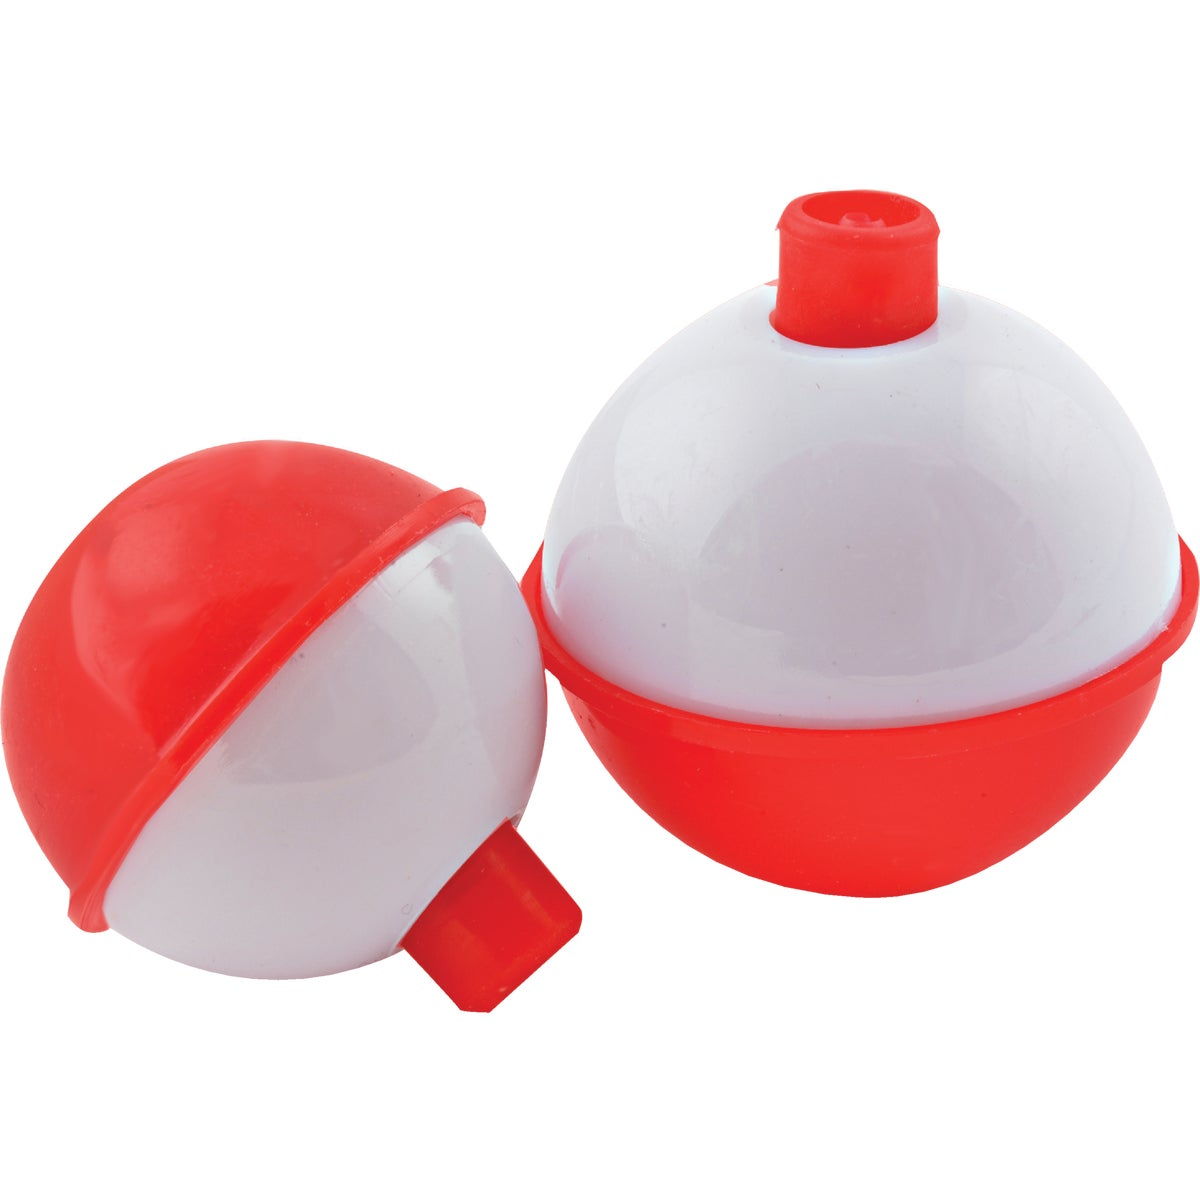 "1"" PUSH BUTTON FLOATS - F4 by South Bend Sptg Good"